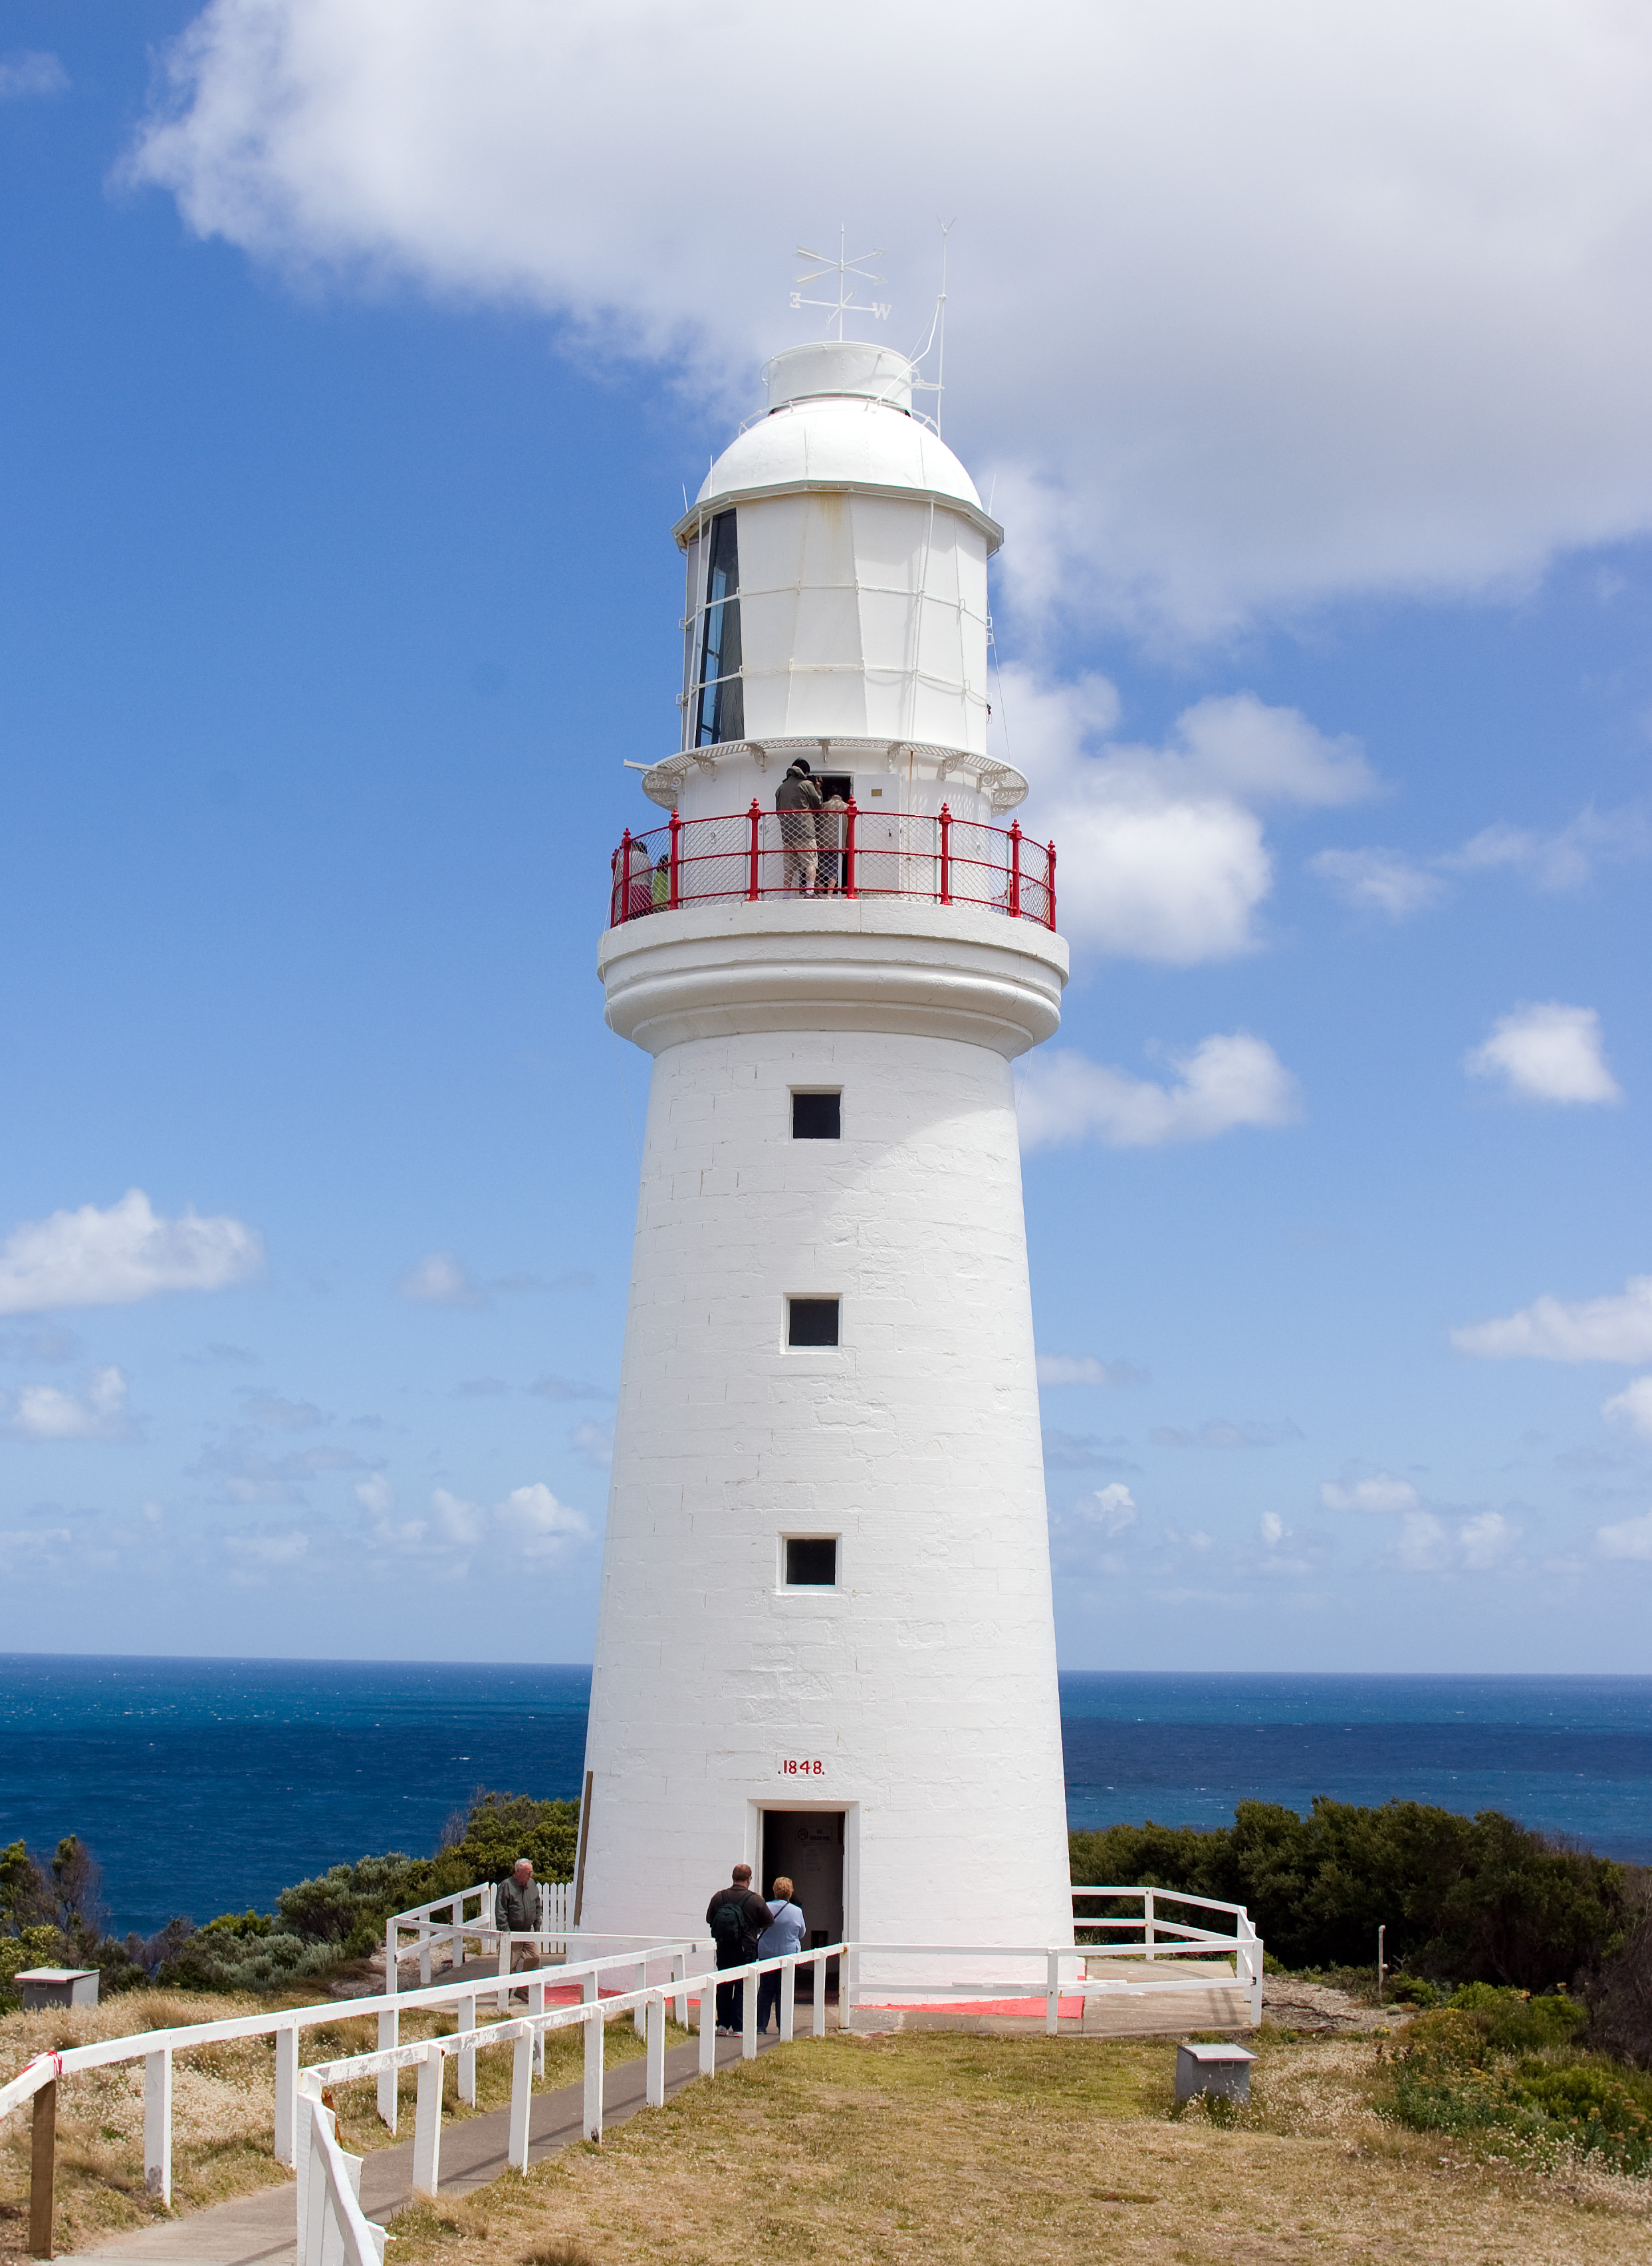 cape otway dating site Book your tickets online for cape otway lightstation, cape otway: see 834 reviews, articles, and 615 photos of cape otway lightstation on tripadvisor.